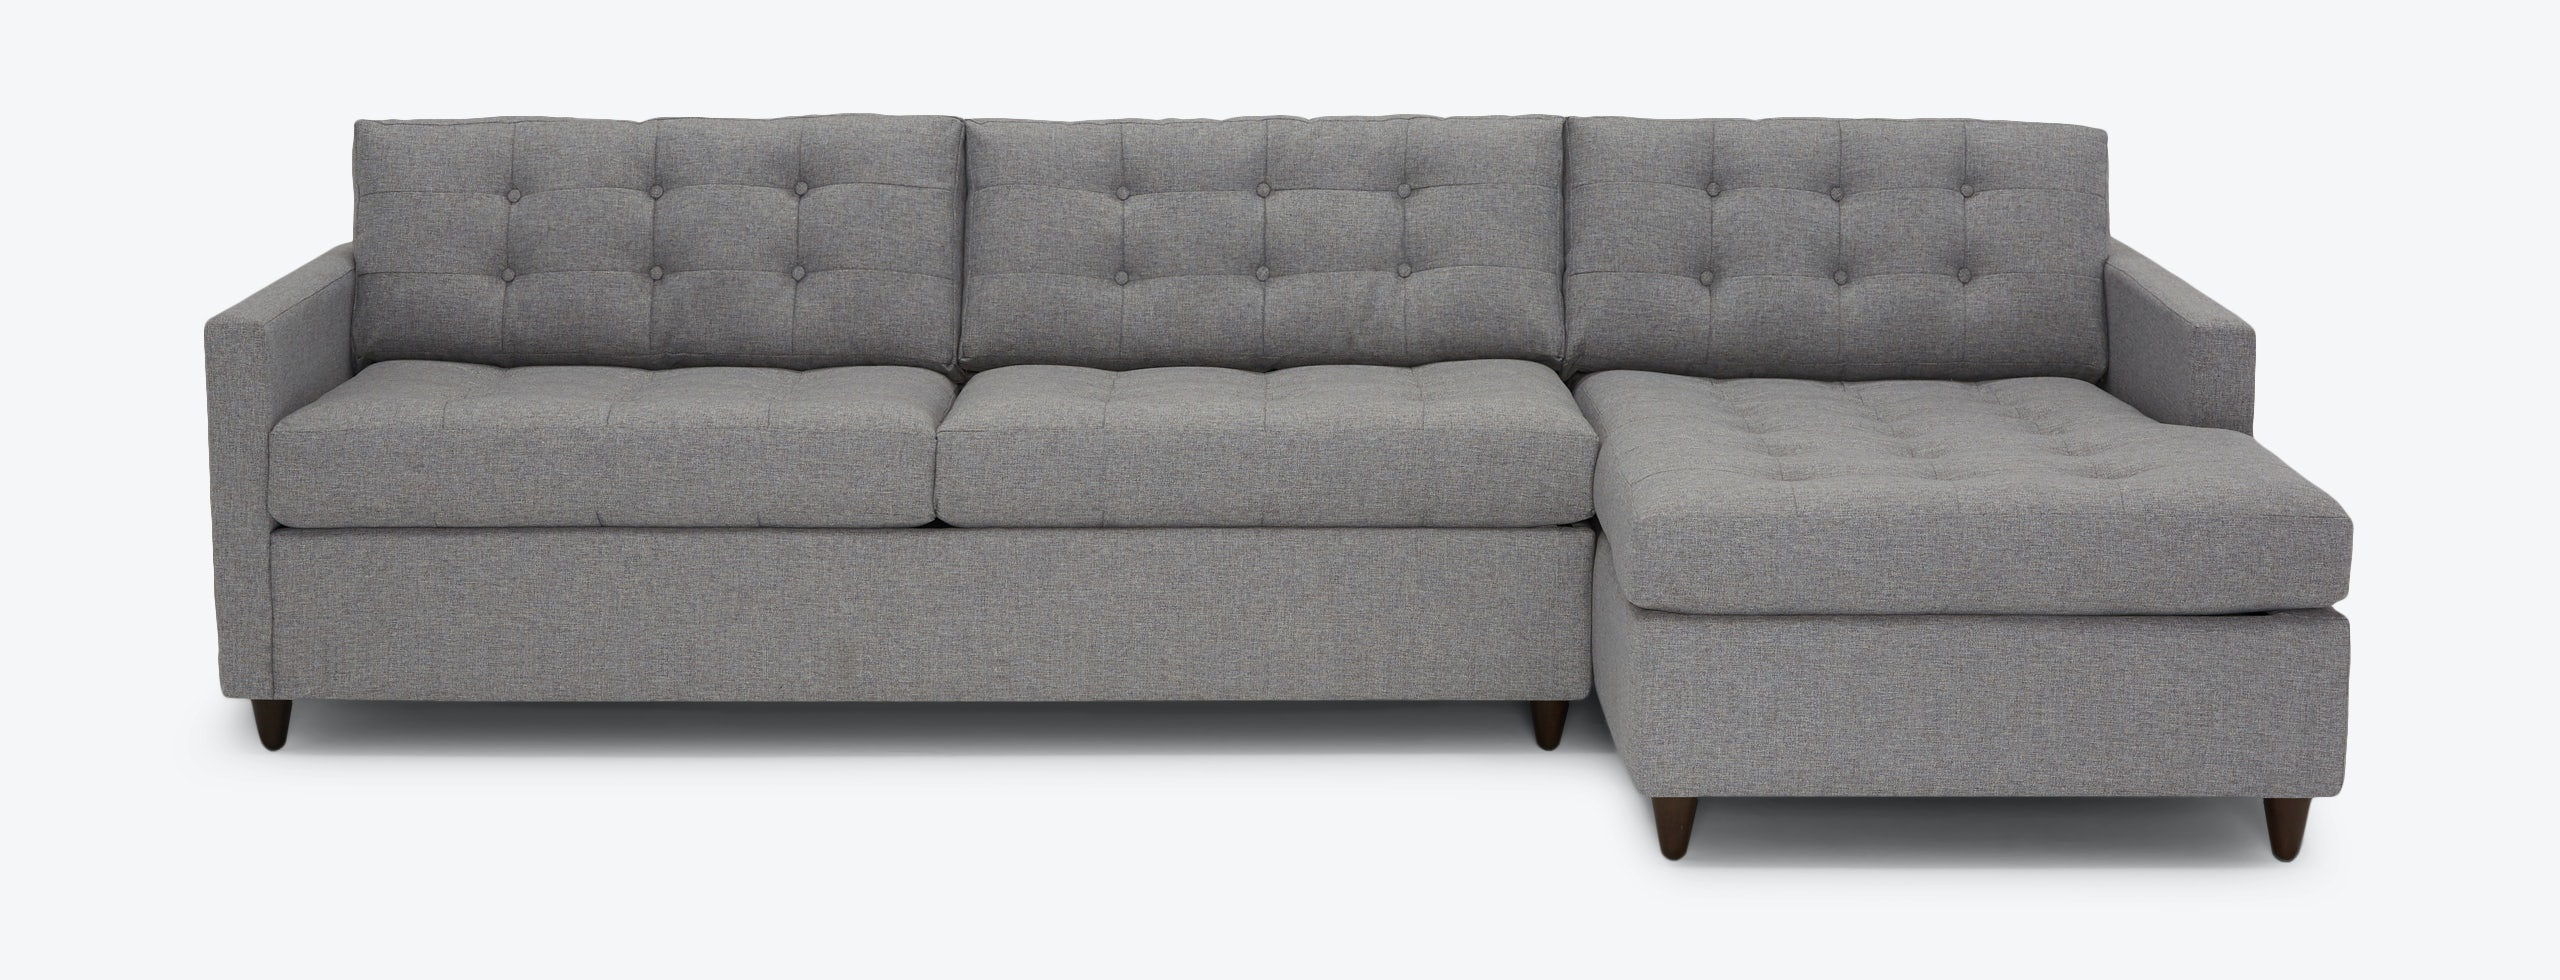 Elliot Sleeper Sectional Storage Taylor Felt Grey